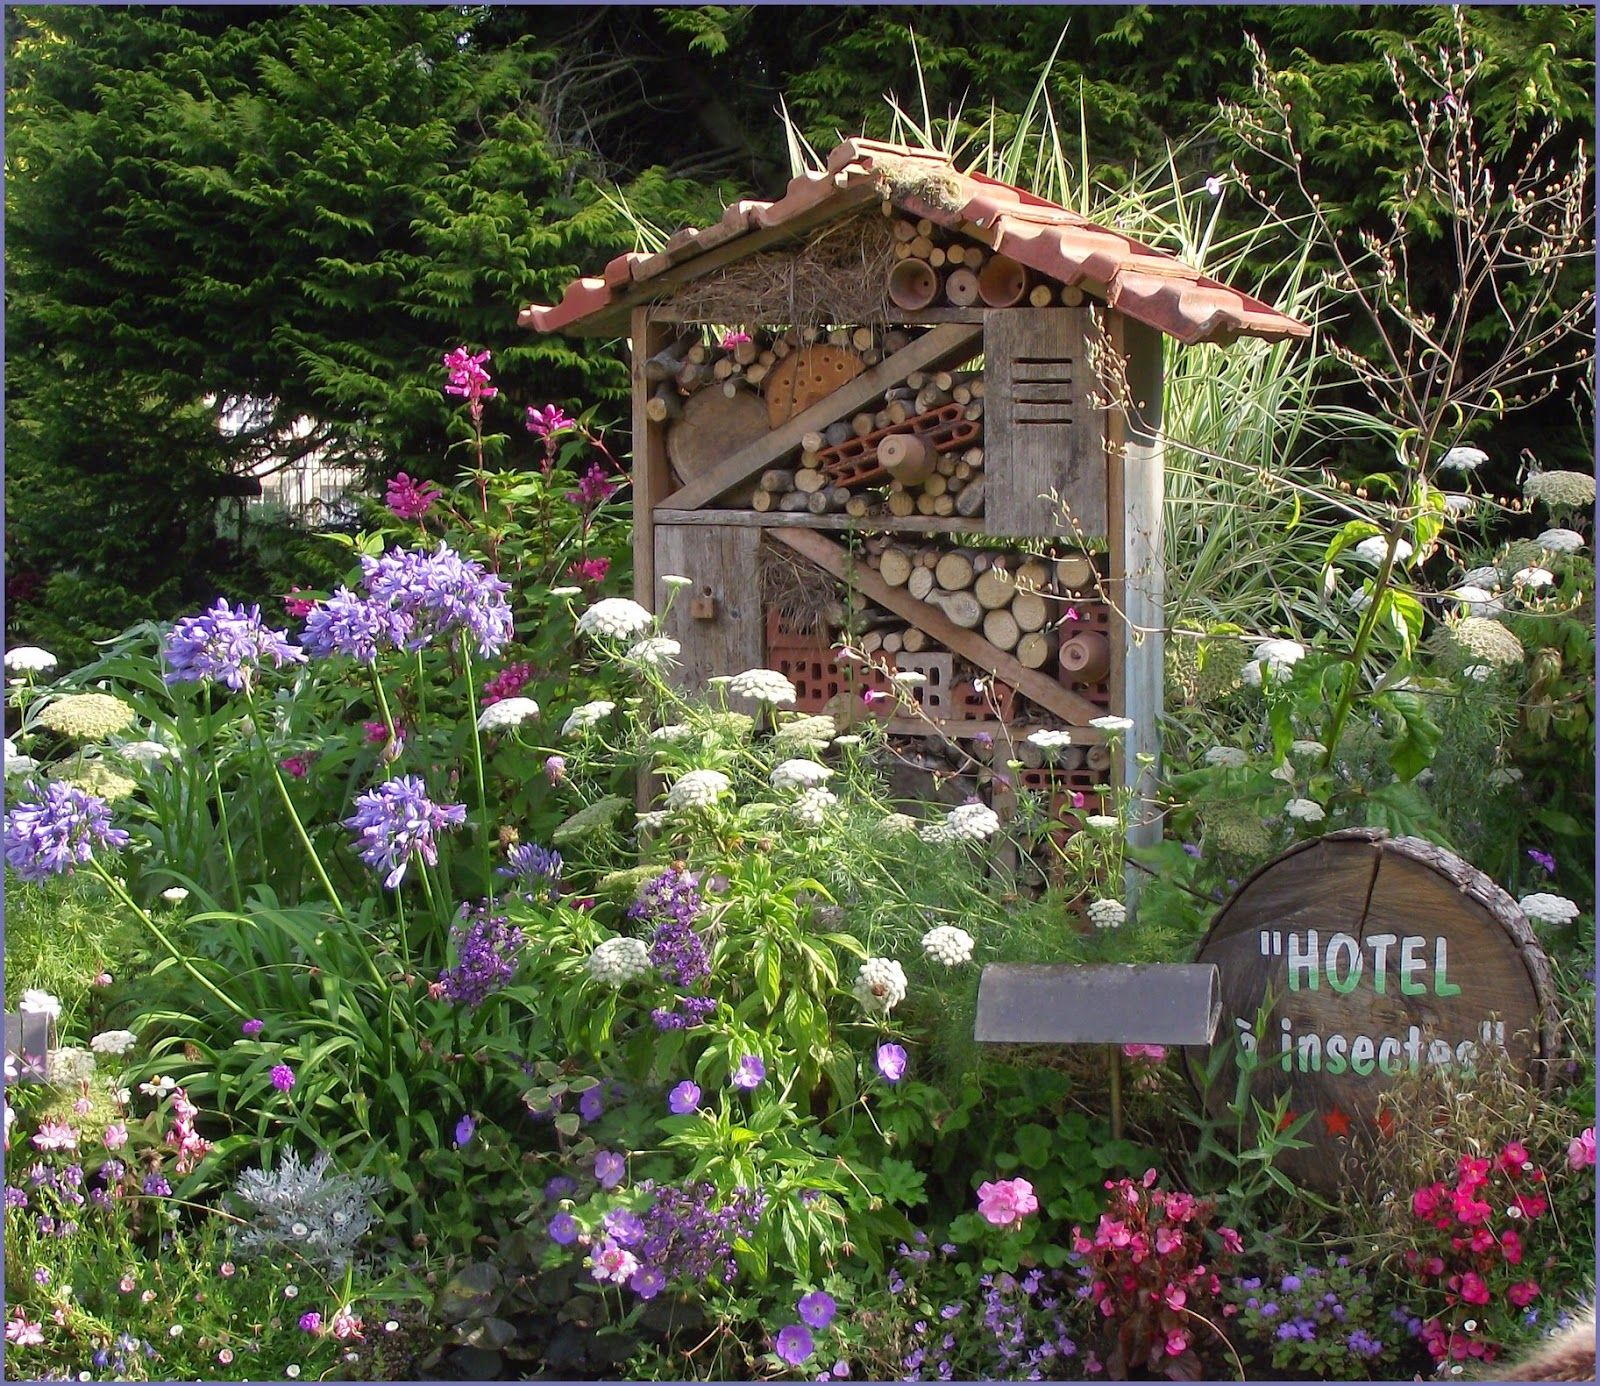 diy insect hotel love the perennial setting maison ou h tel pour les insectes garden. Black Bedroom Furniture Sets. Home Design Ideas